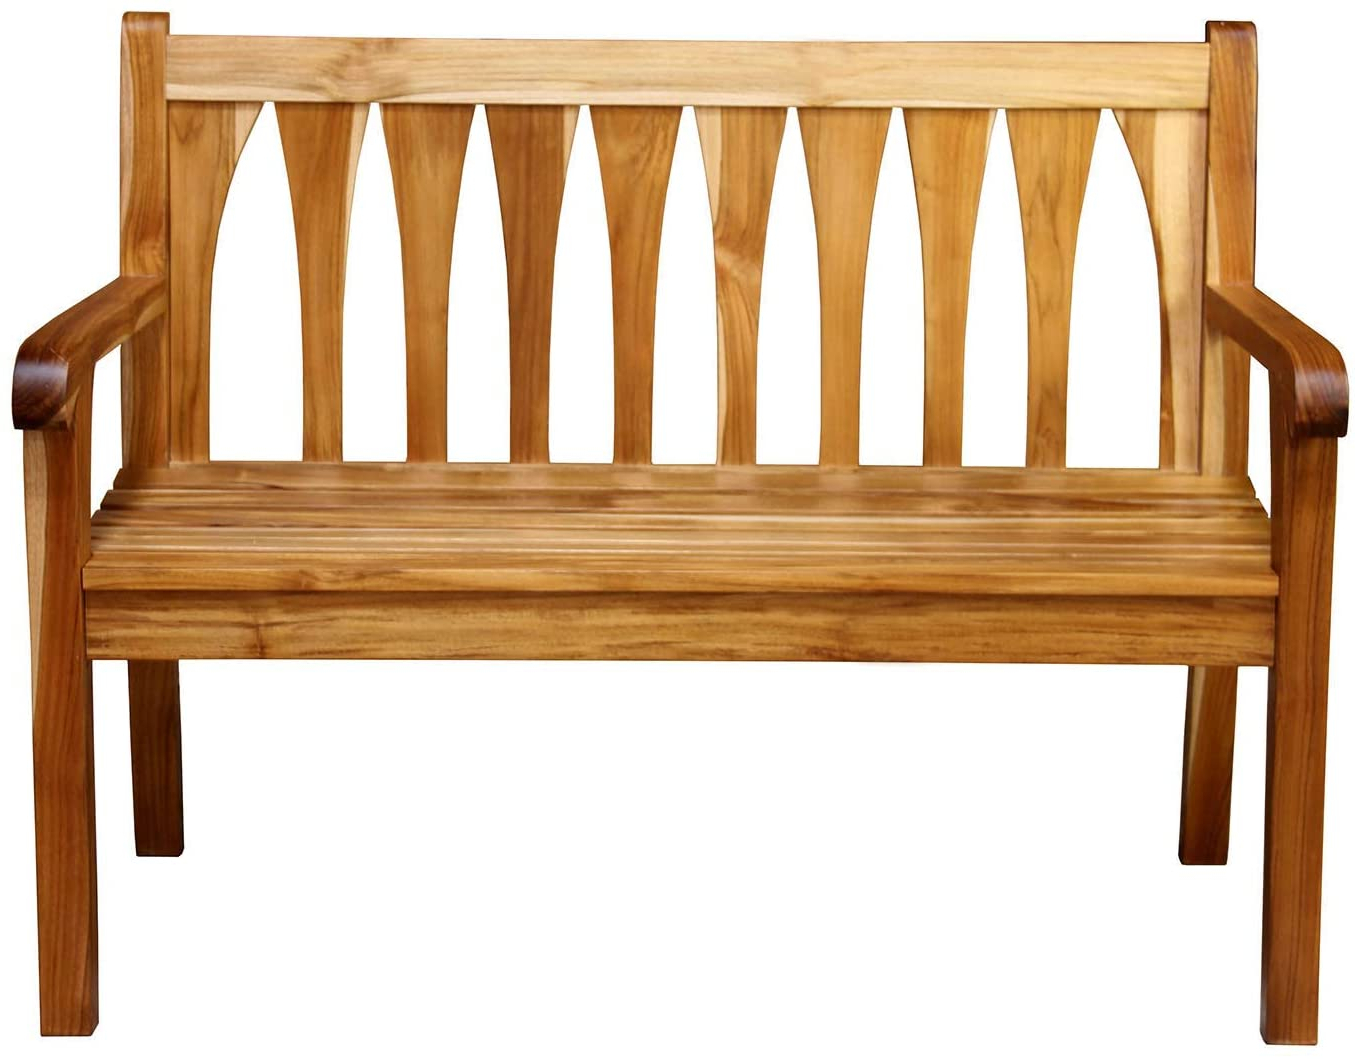 "Amazon : Ecodecors Tranquility 47"" Teak Wood Outdoor Throughout Well Known Hampstead Teak Garden Benches (View 18 of 30)"